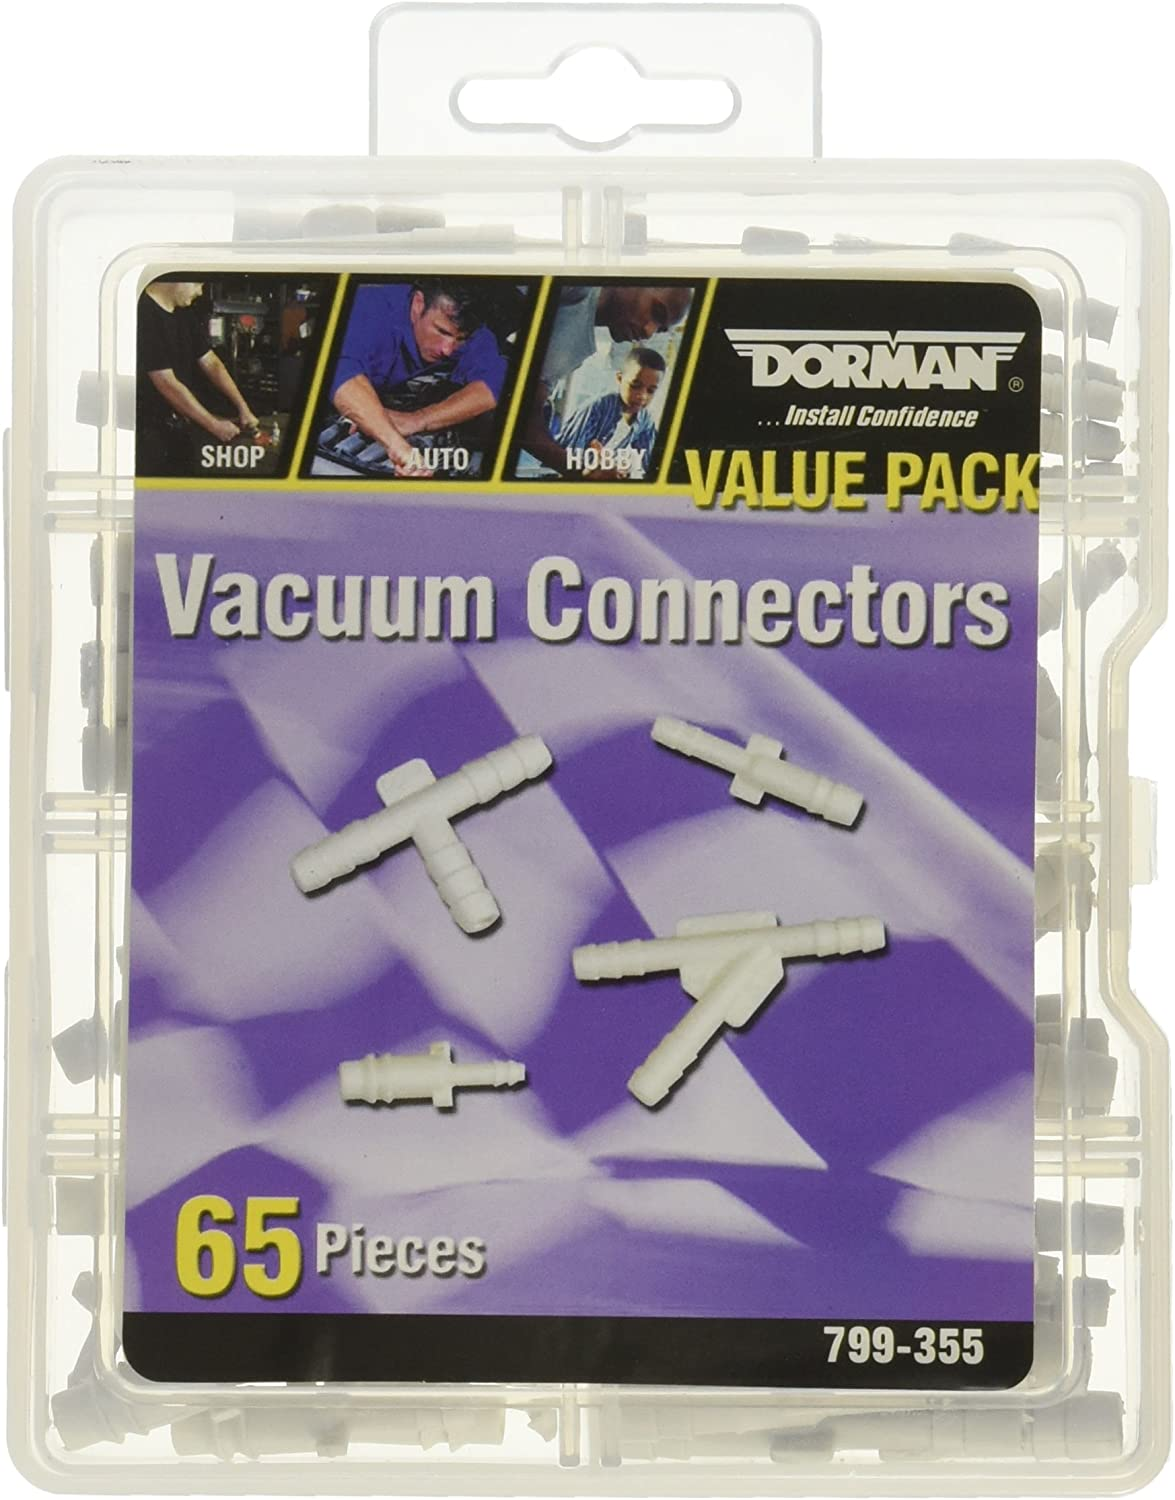 Dorman 799-355 Vacuum Connector Value Pack